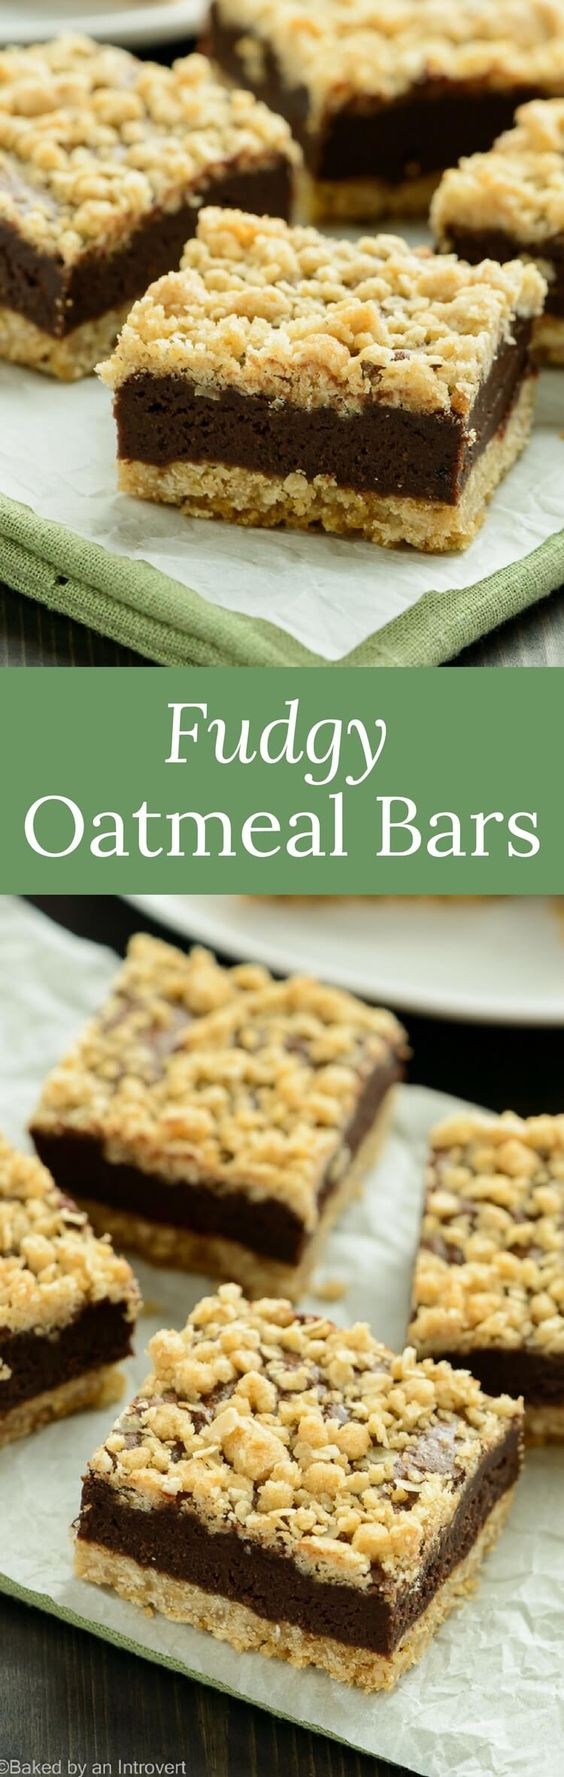 explore fudgy oatmeal oatmeal bars and more